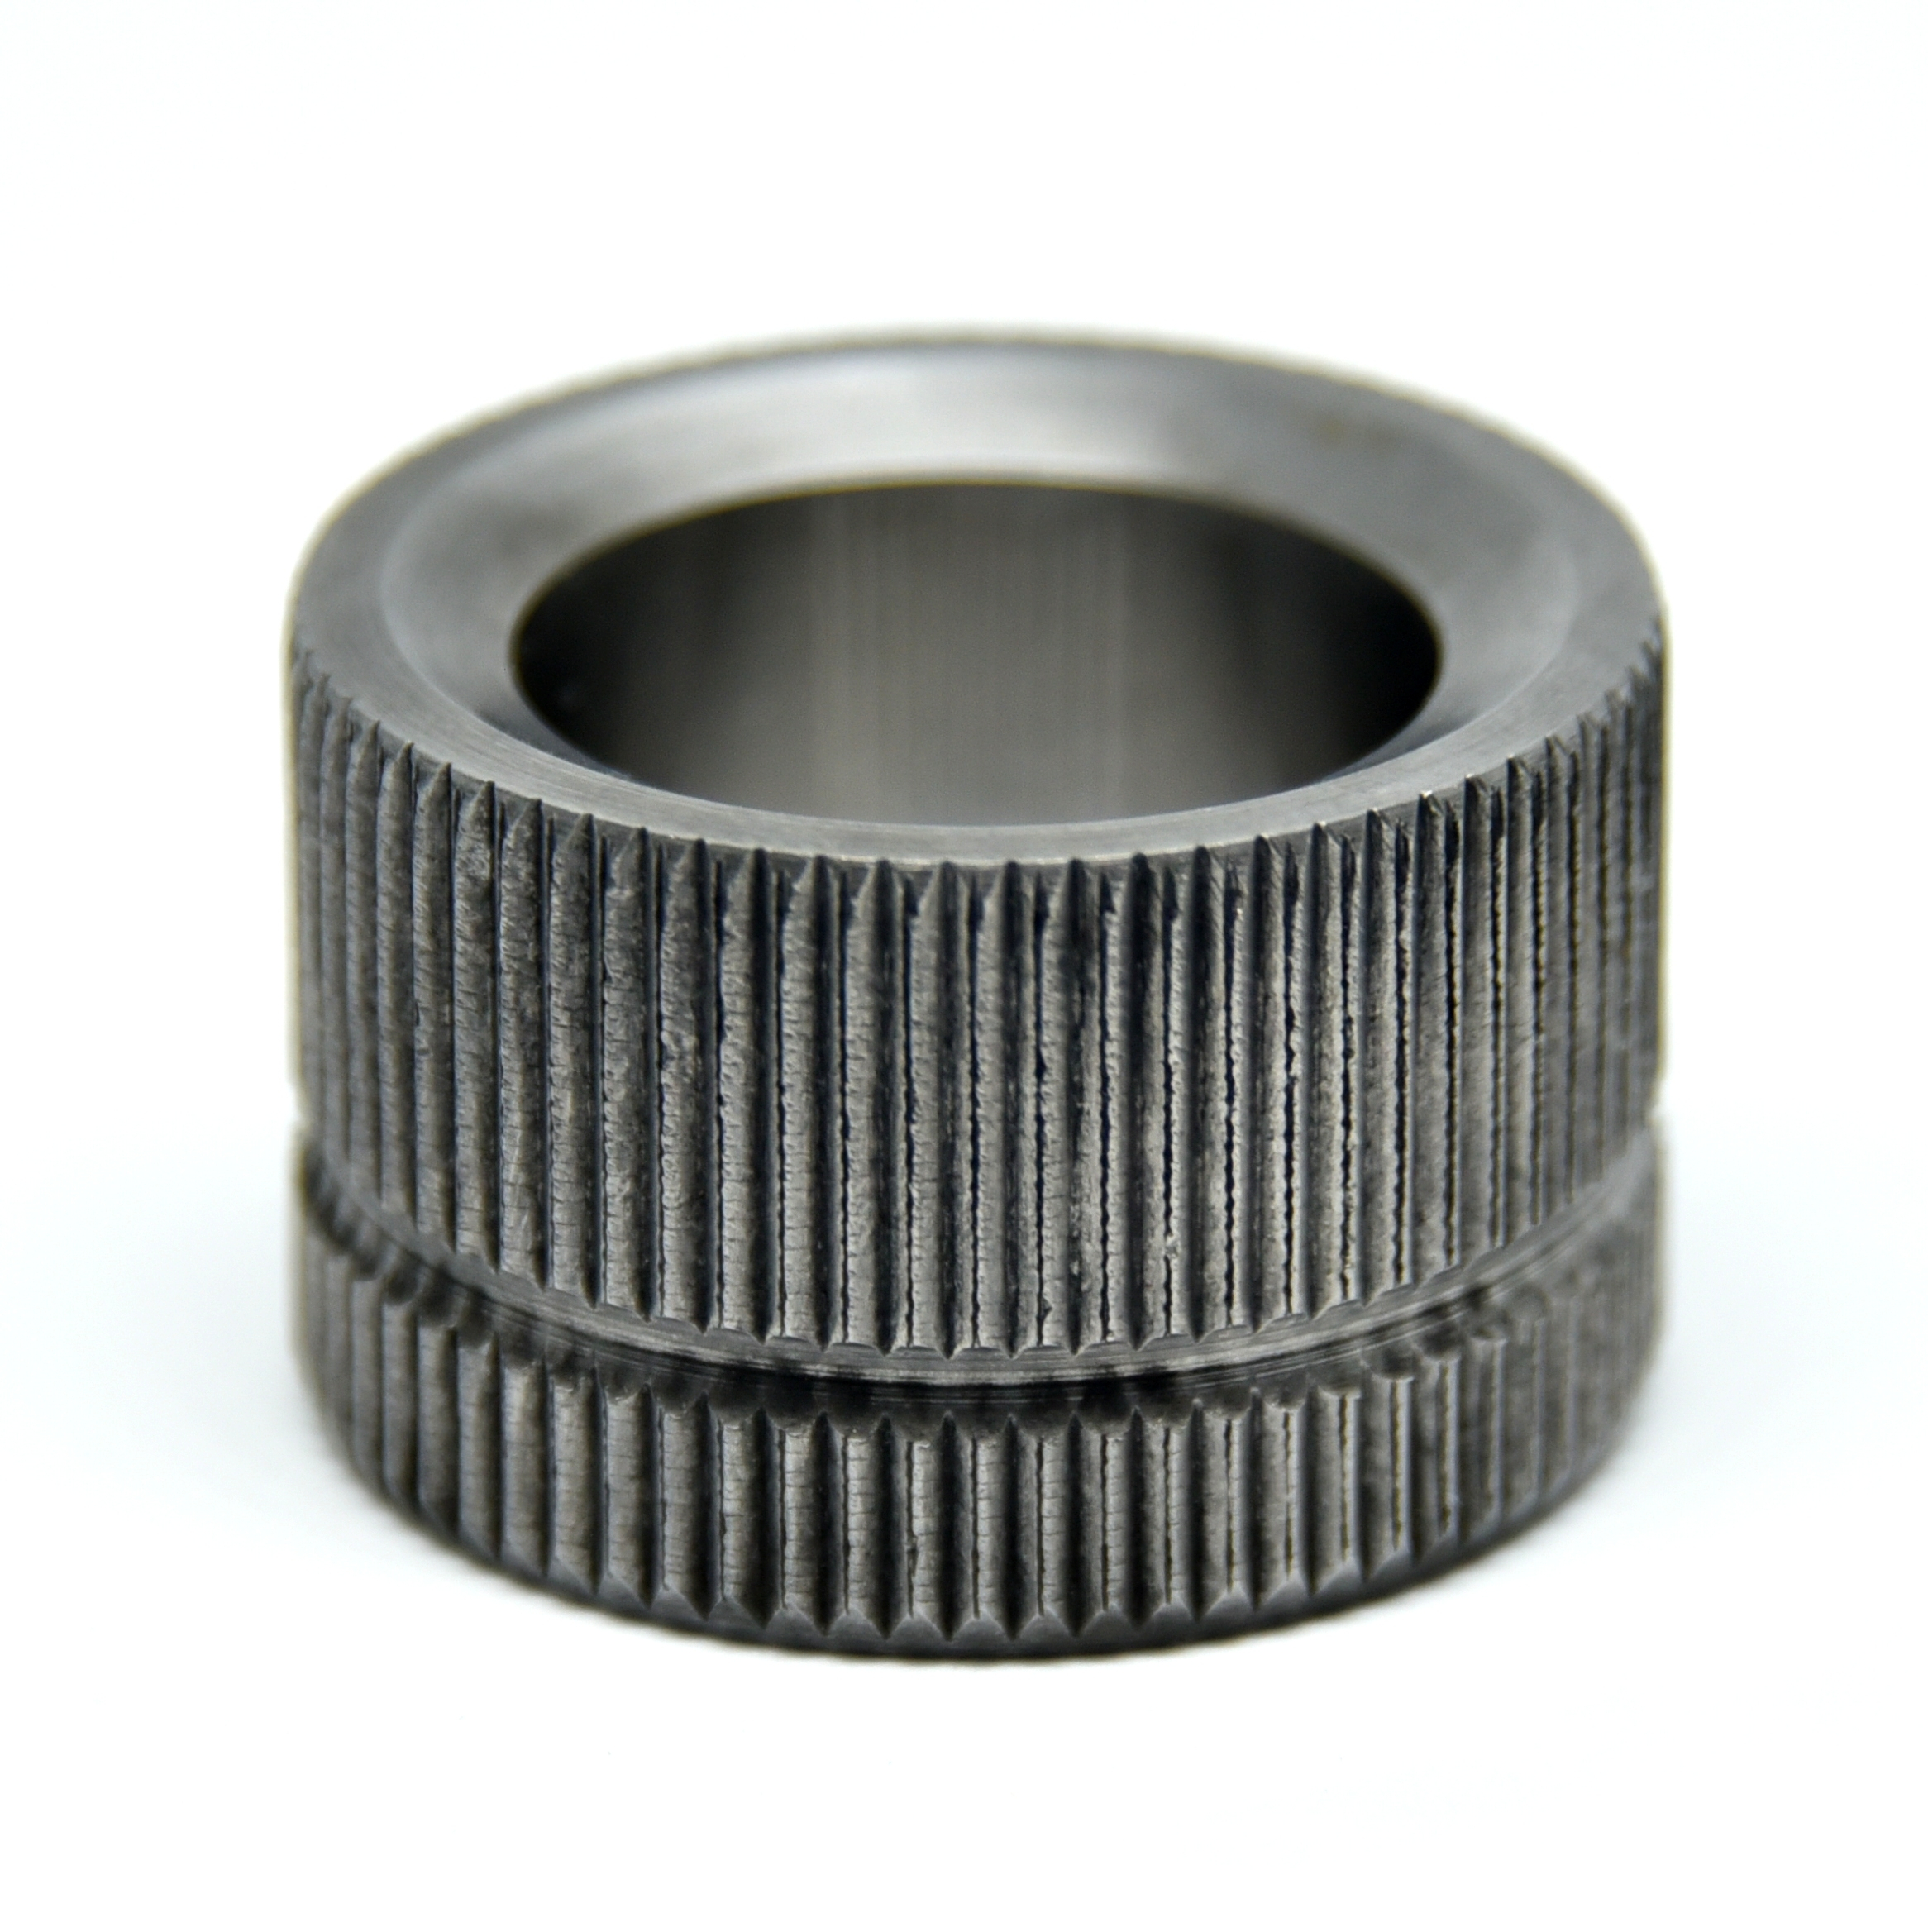 Polygrip recessed serrated bushes